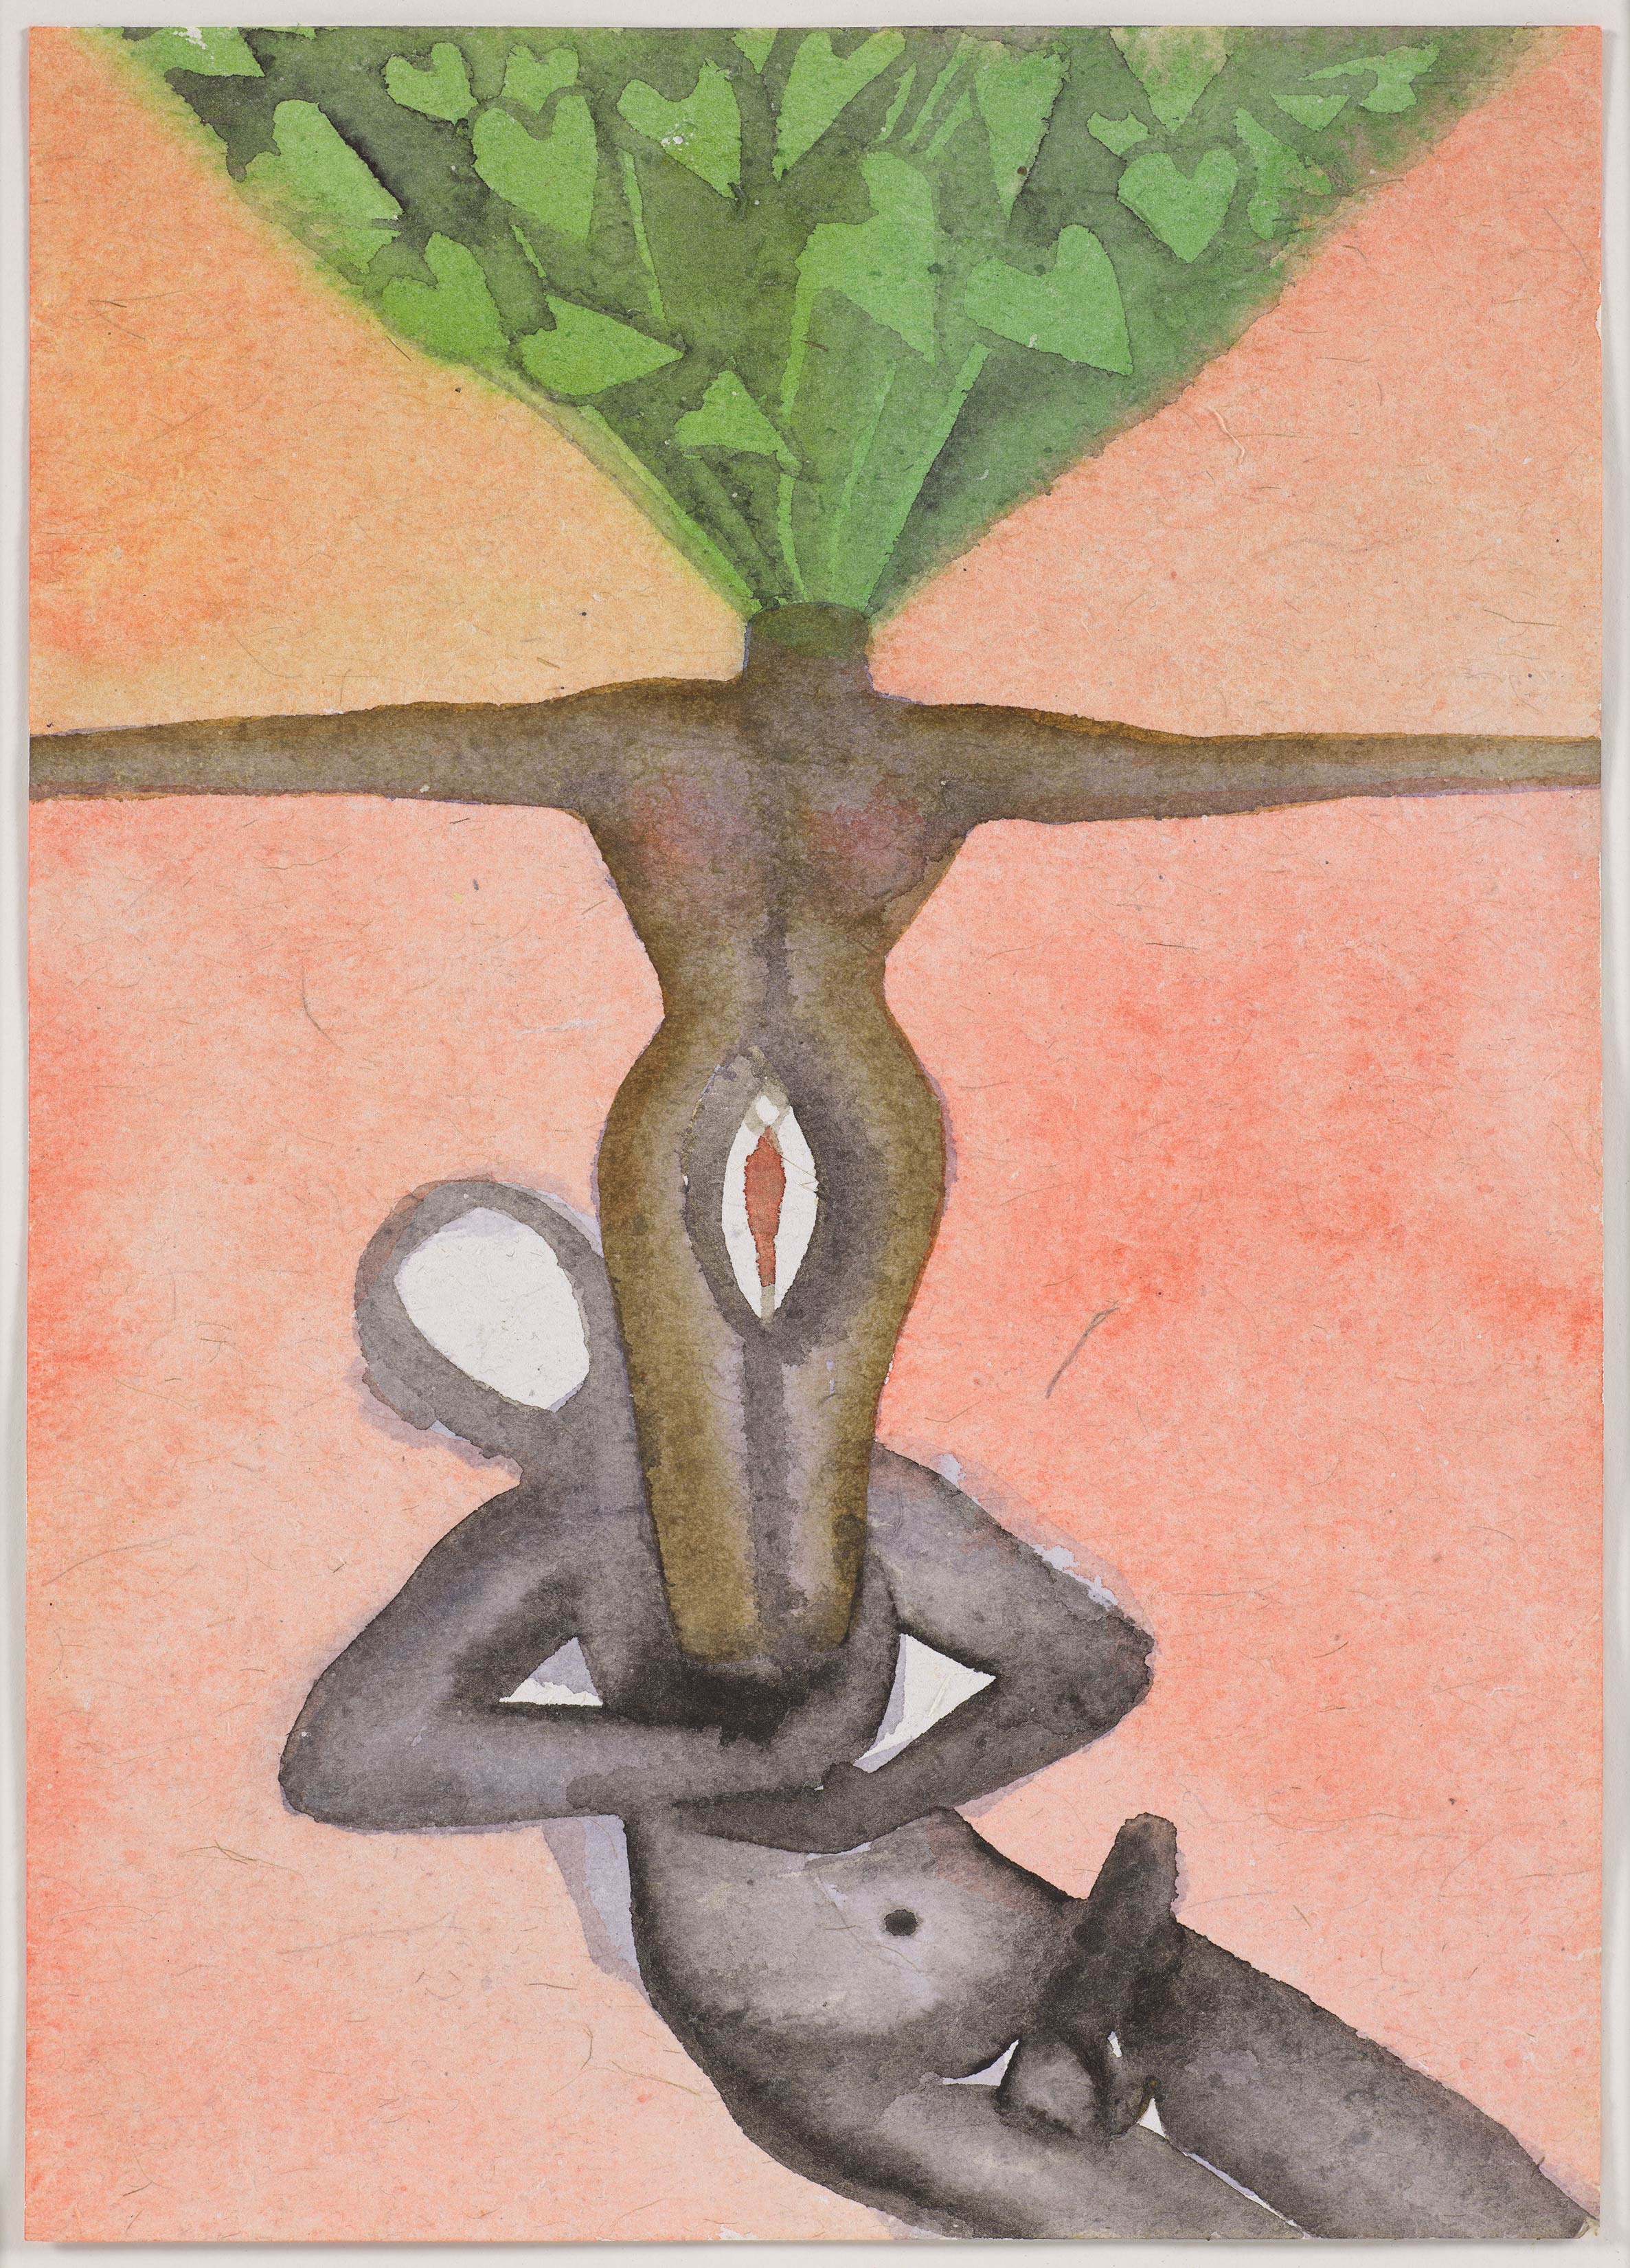 Francesco Clemente, A Story Well Told VII, 2013